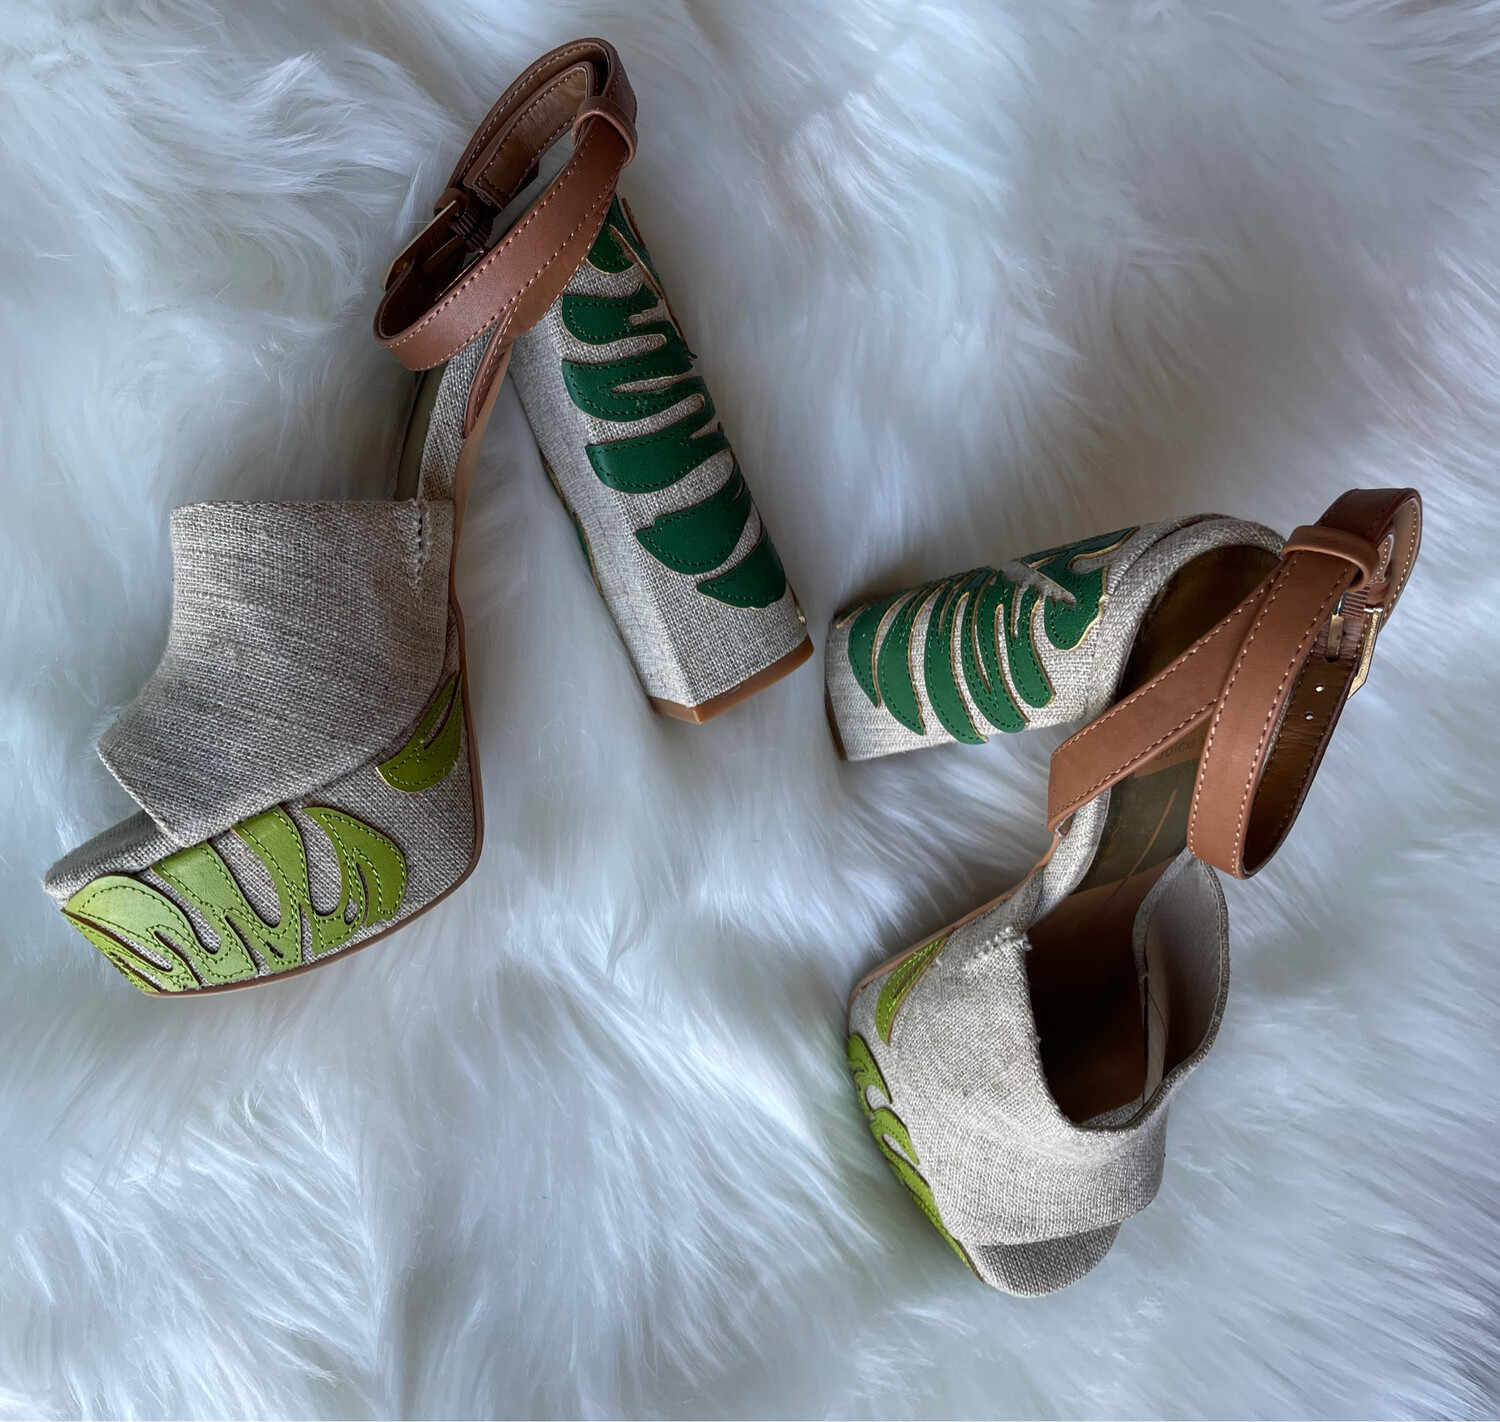 Dolce Vita Natural Palm Leaf Block Sandal Heels - Size 7